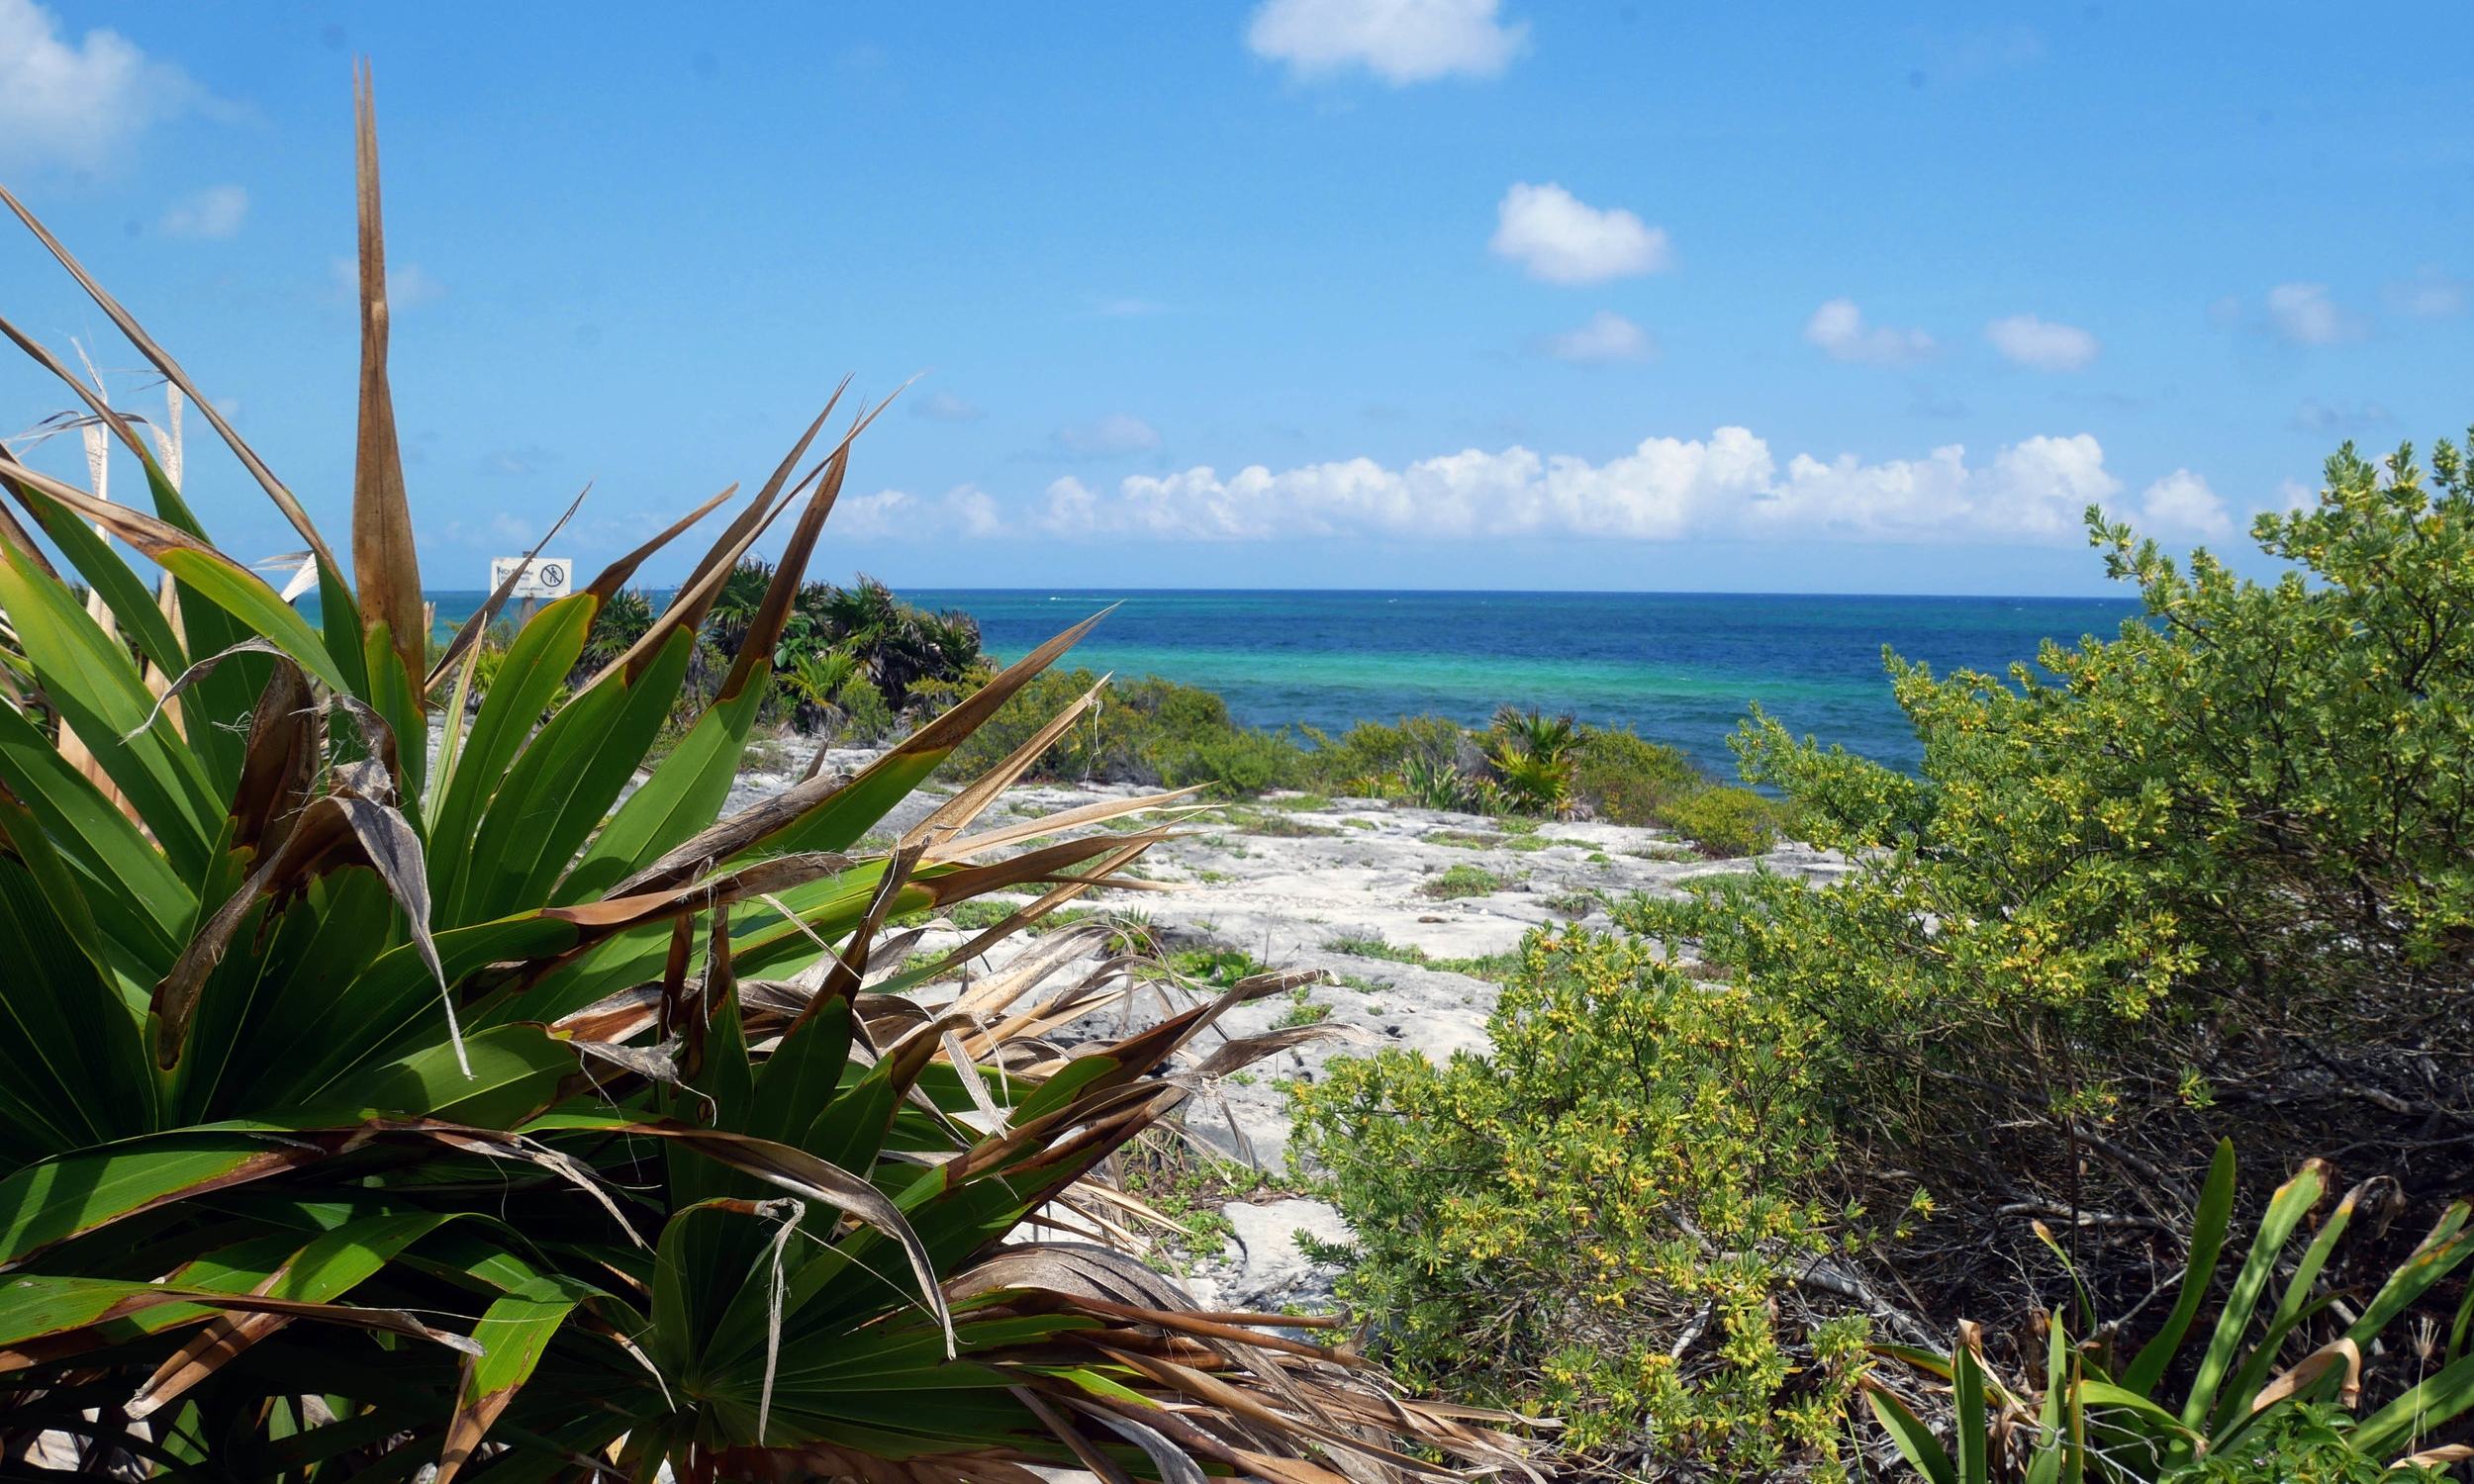 The view from Tulum Ruins. Not too shabby, hey?